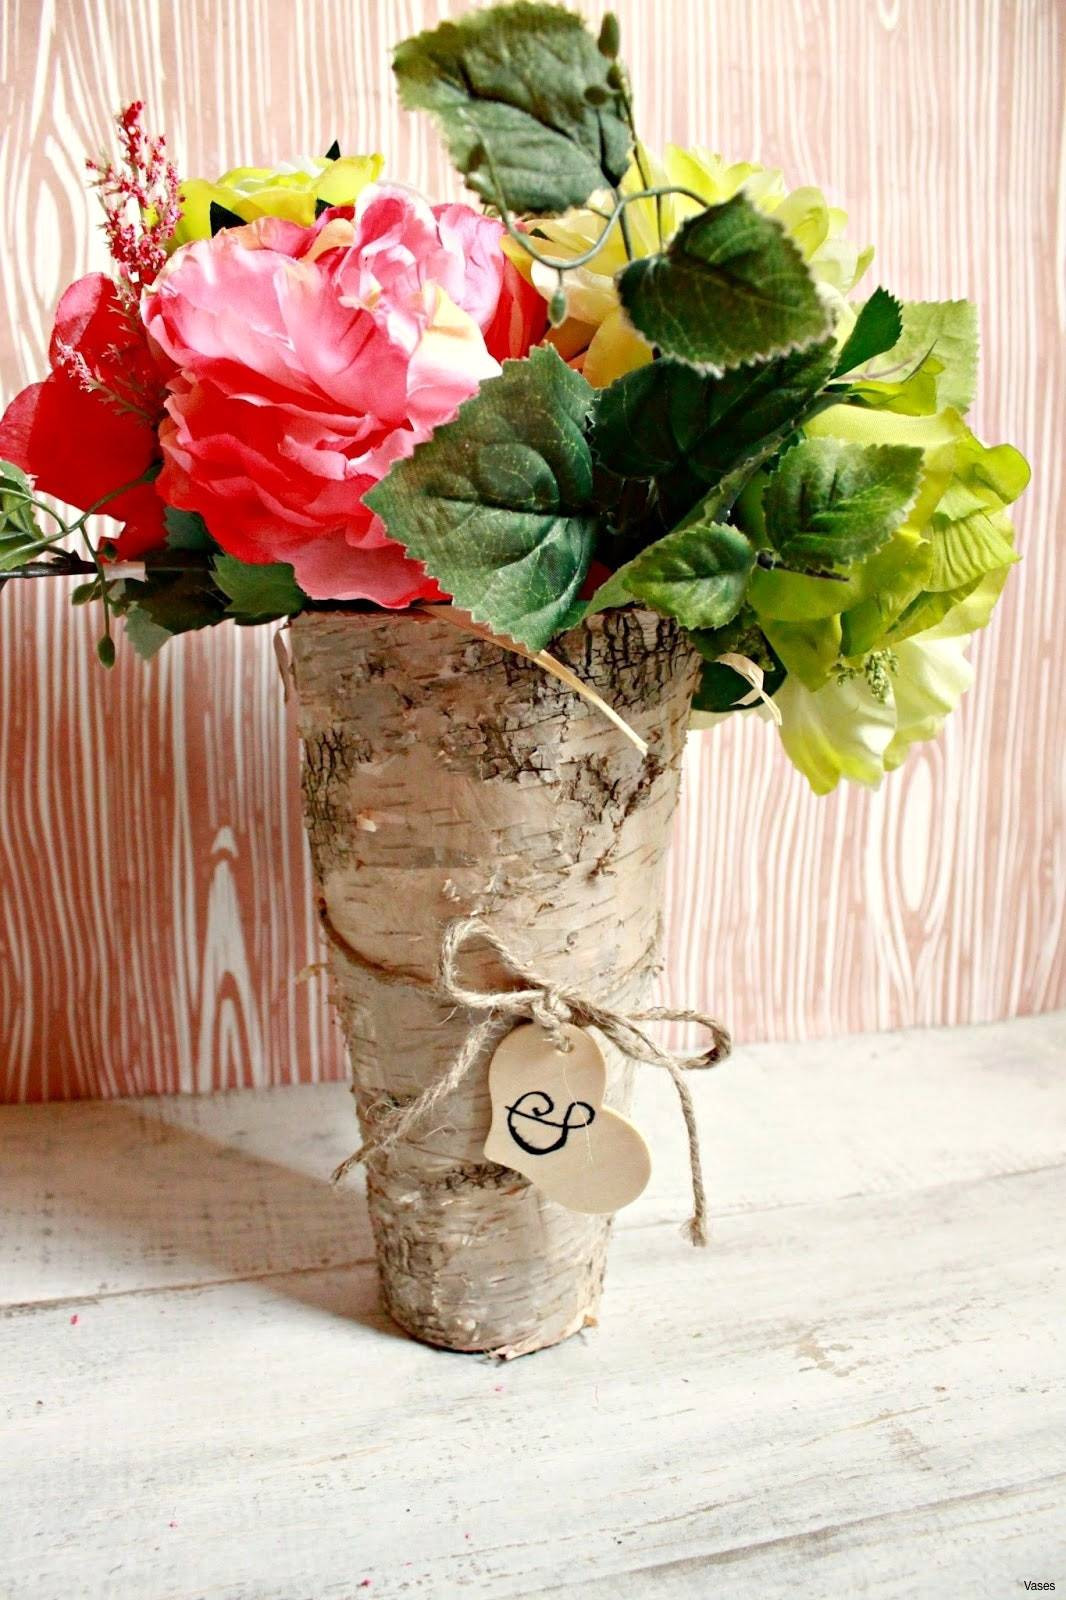 eiffel tower vases for sale of wedding decor for sale by owner elegant flowers and decorations for regarding wedding decor for sale by owner elegant flowers and decorations for weddings h vases diy wood